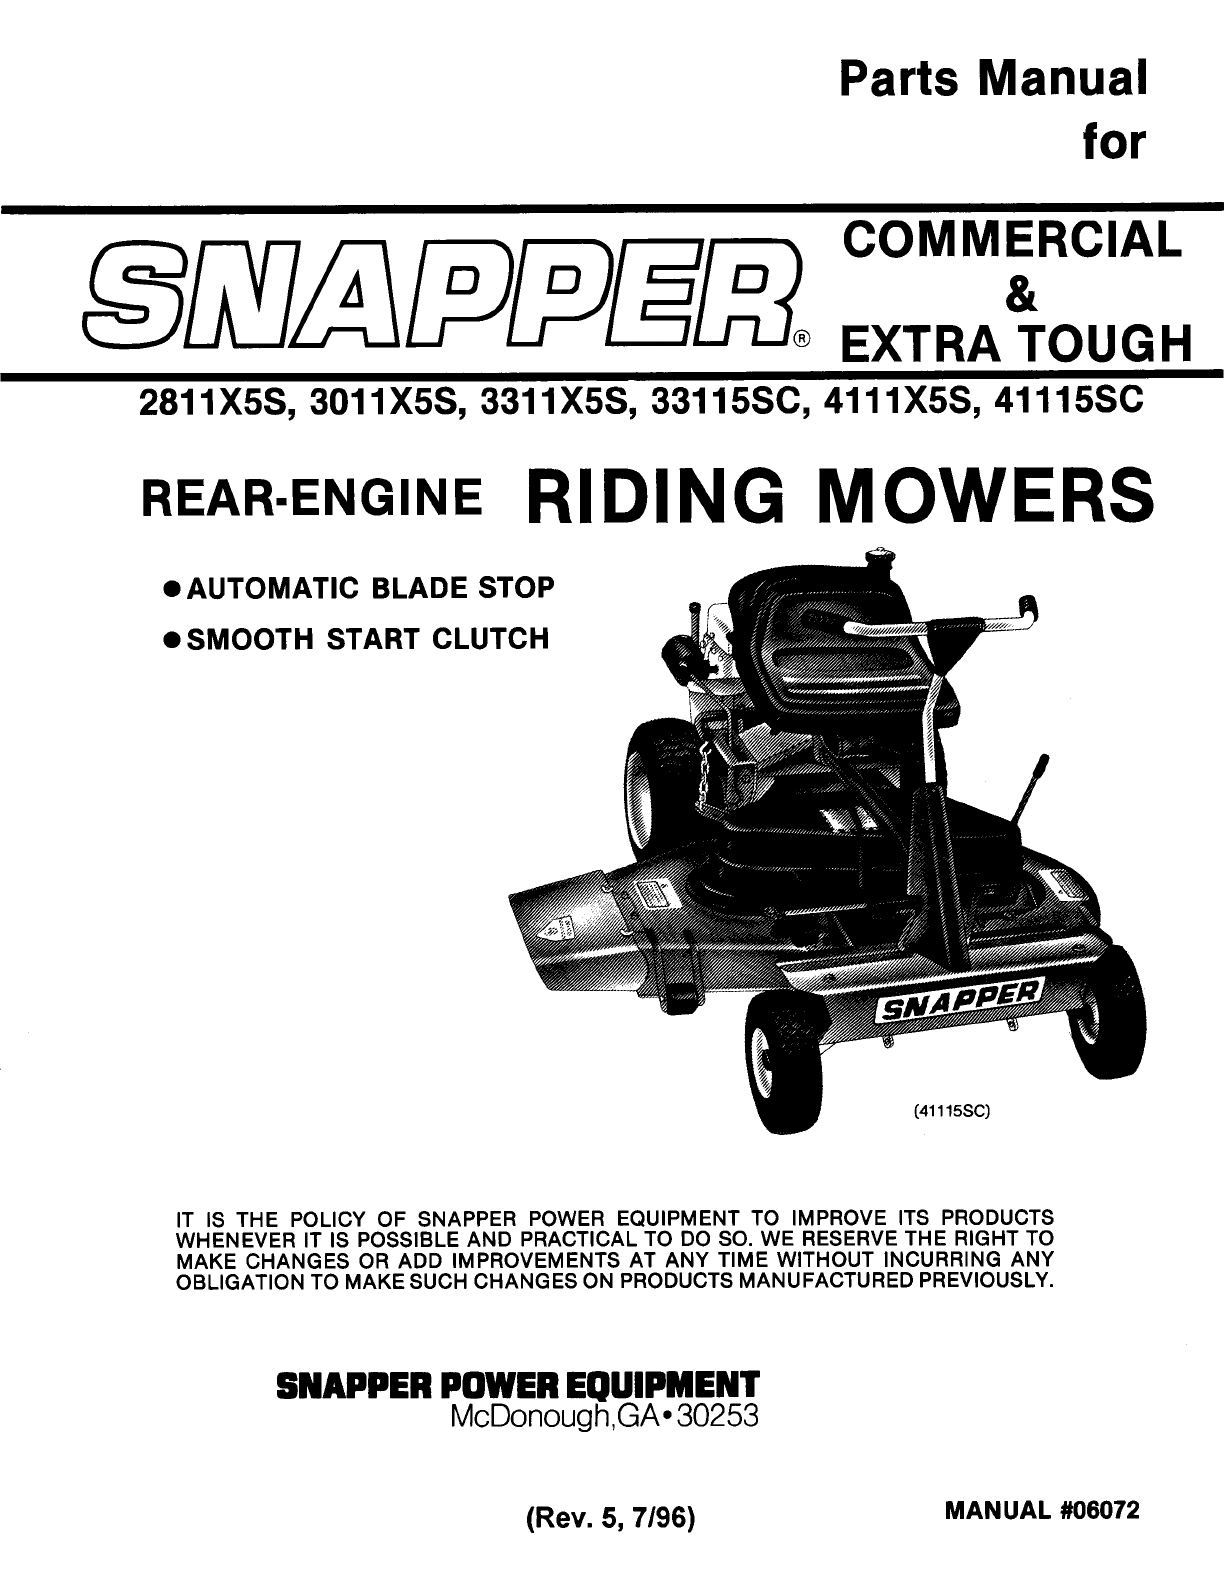 84e07184 30ec 4302 b856 842ecf9c9b3f bg1 snapper lawn mower 2811x5s user guide manualsonline com wiring diagram for snapper riding mower at honlapkeszites.co